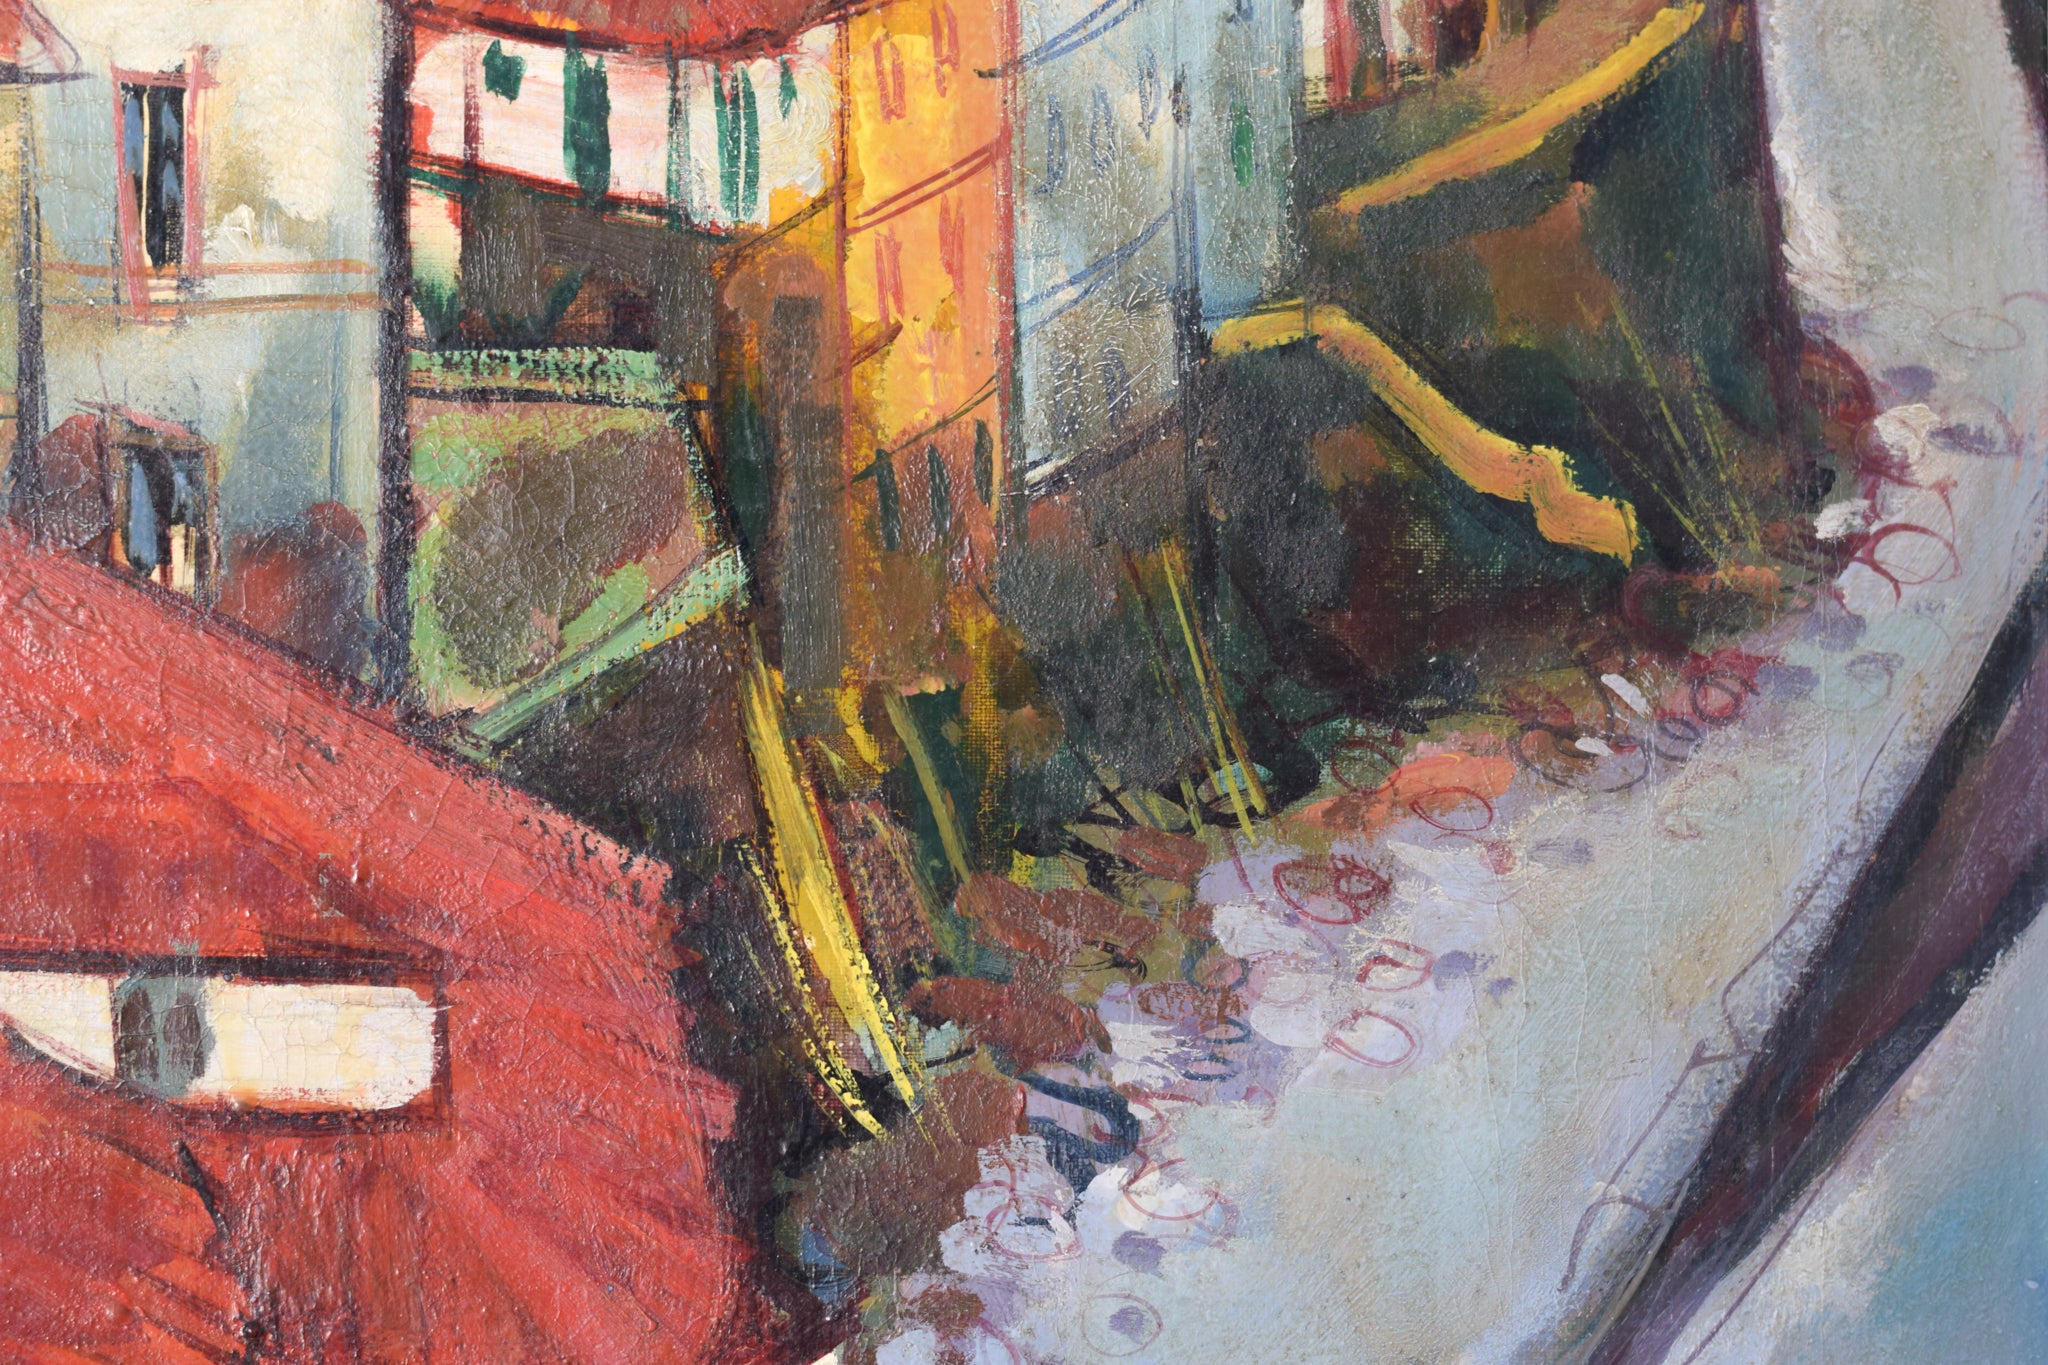 Post-Impressionist style painting of Red Roofs in Northern Spain_Detail 2